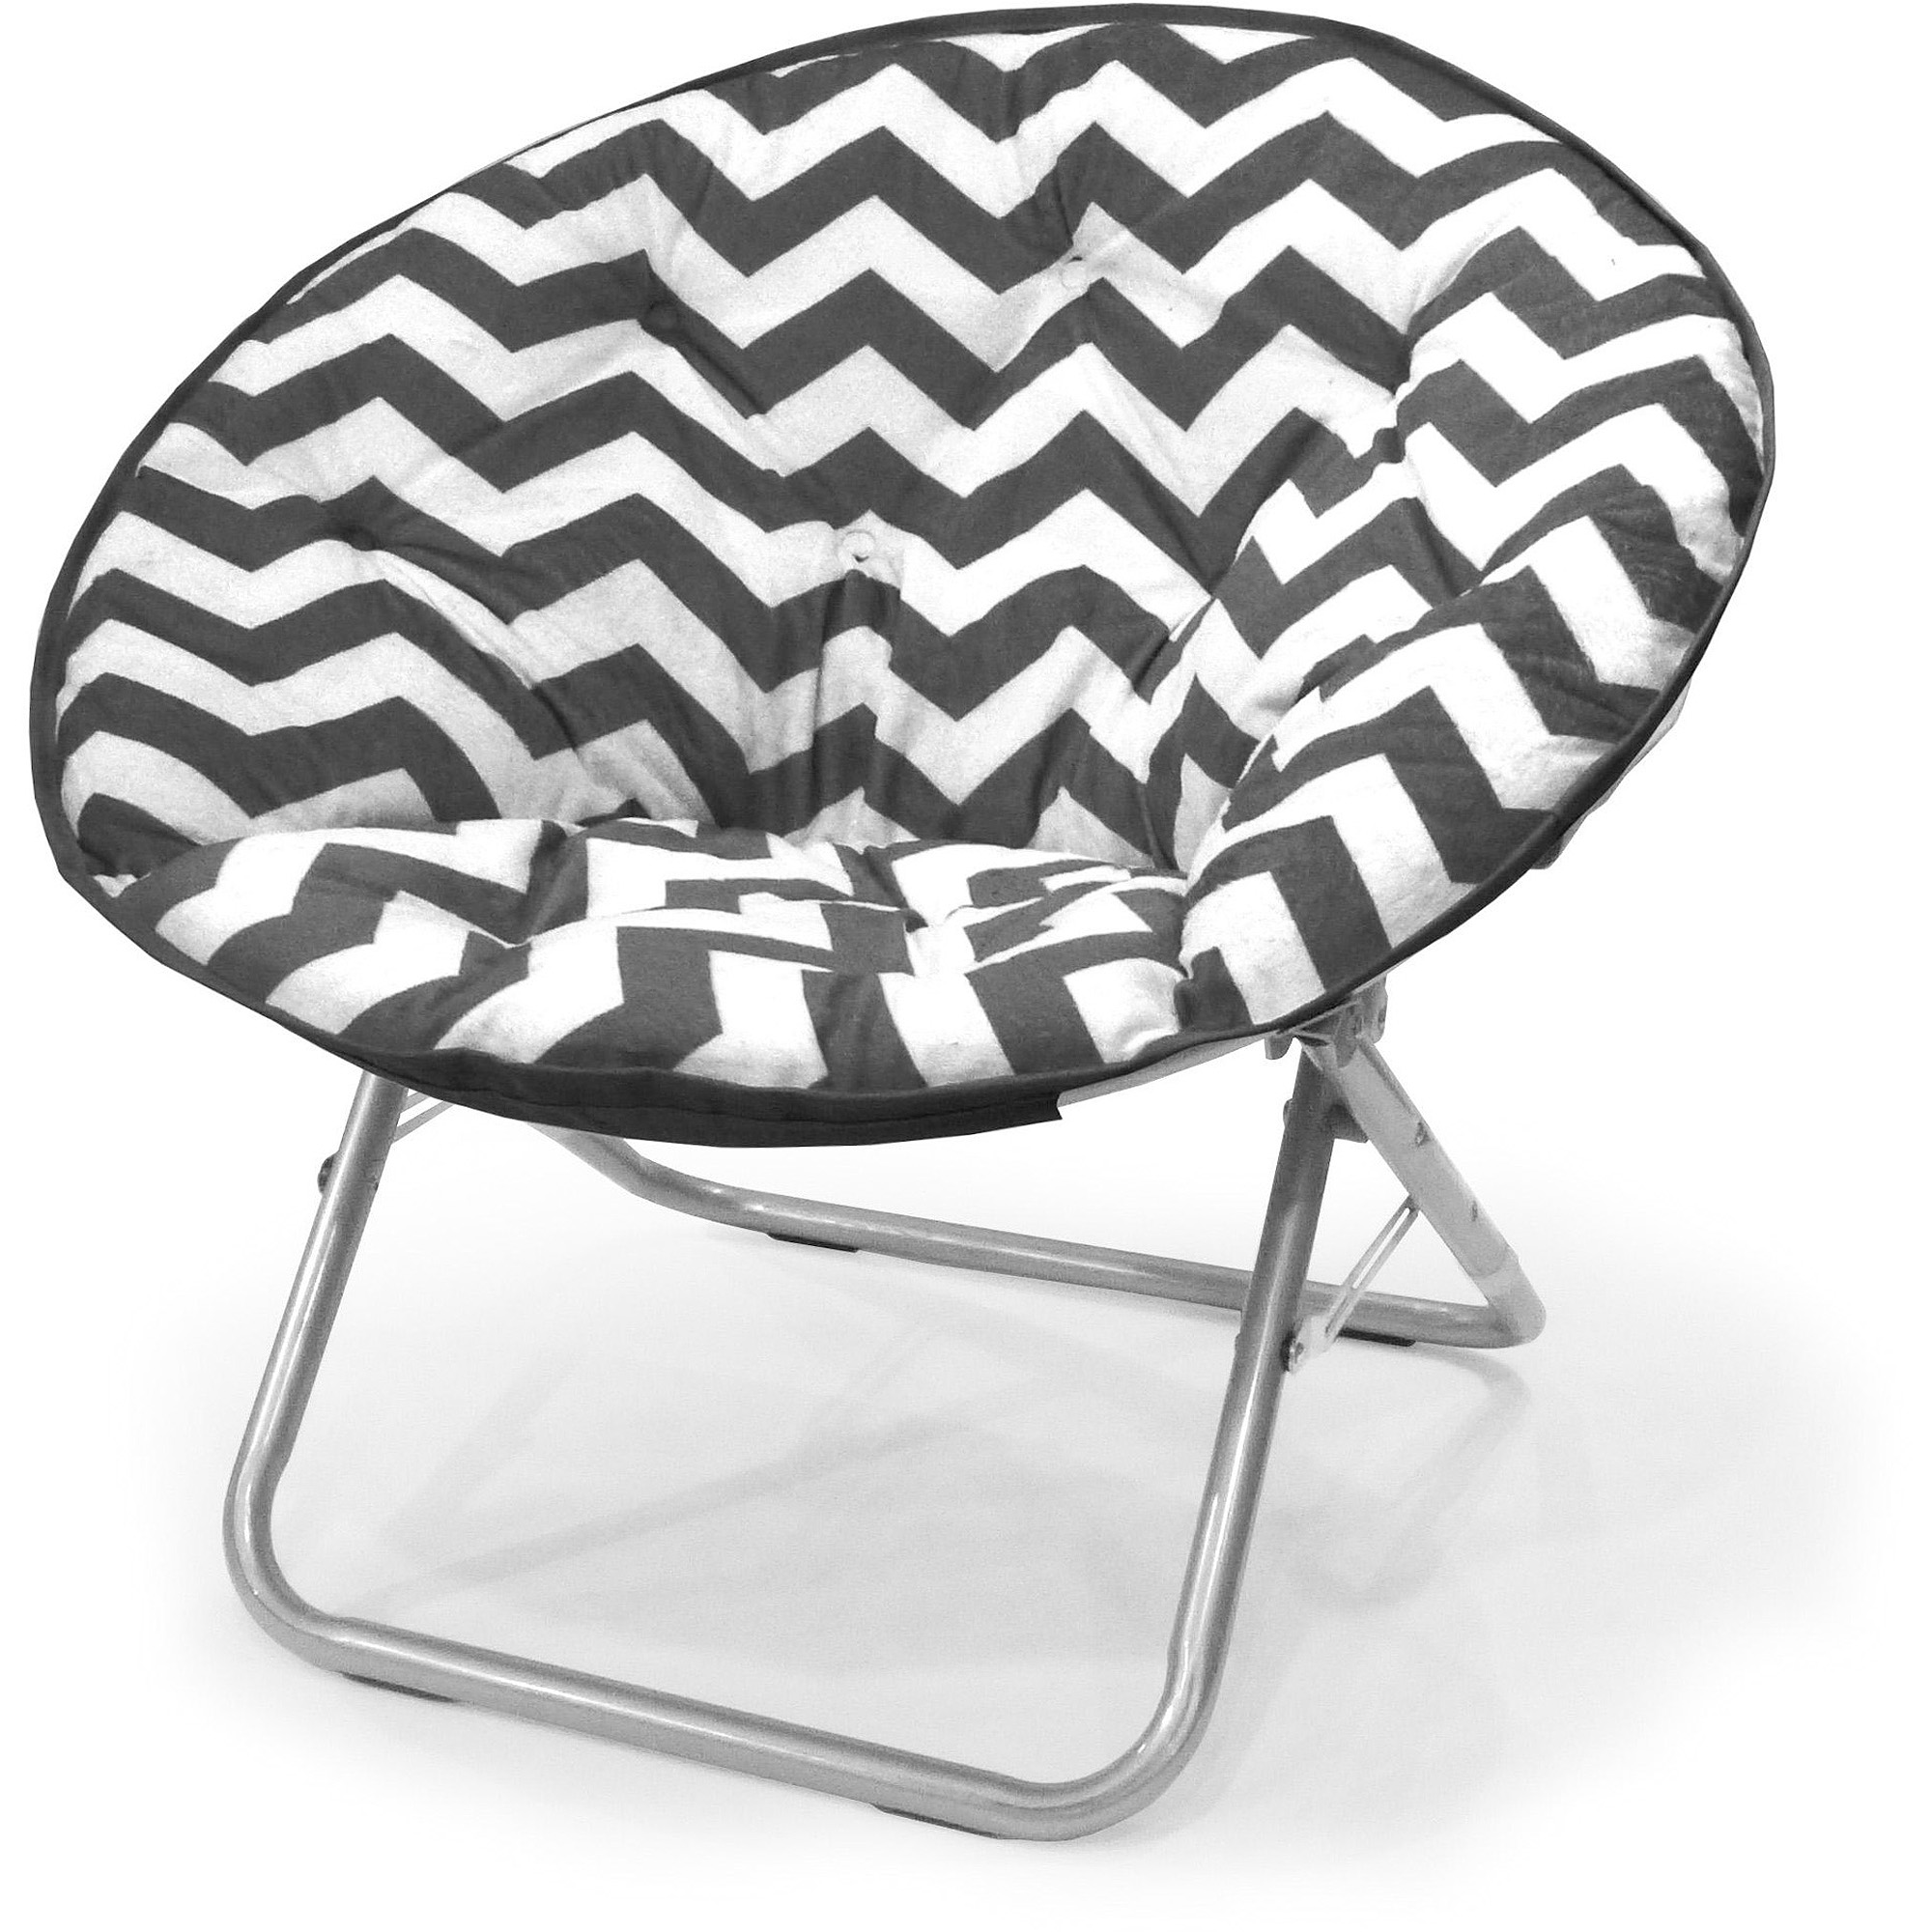 Mainstays Plush Chevron Saucer Chair, Multiple Colors